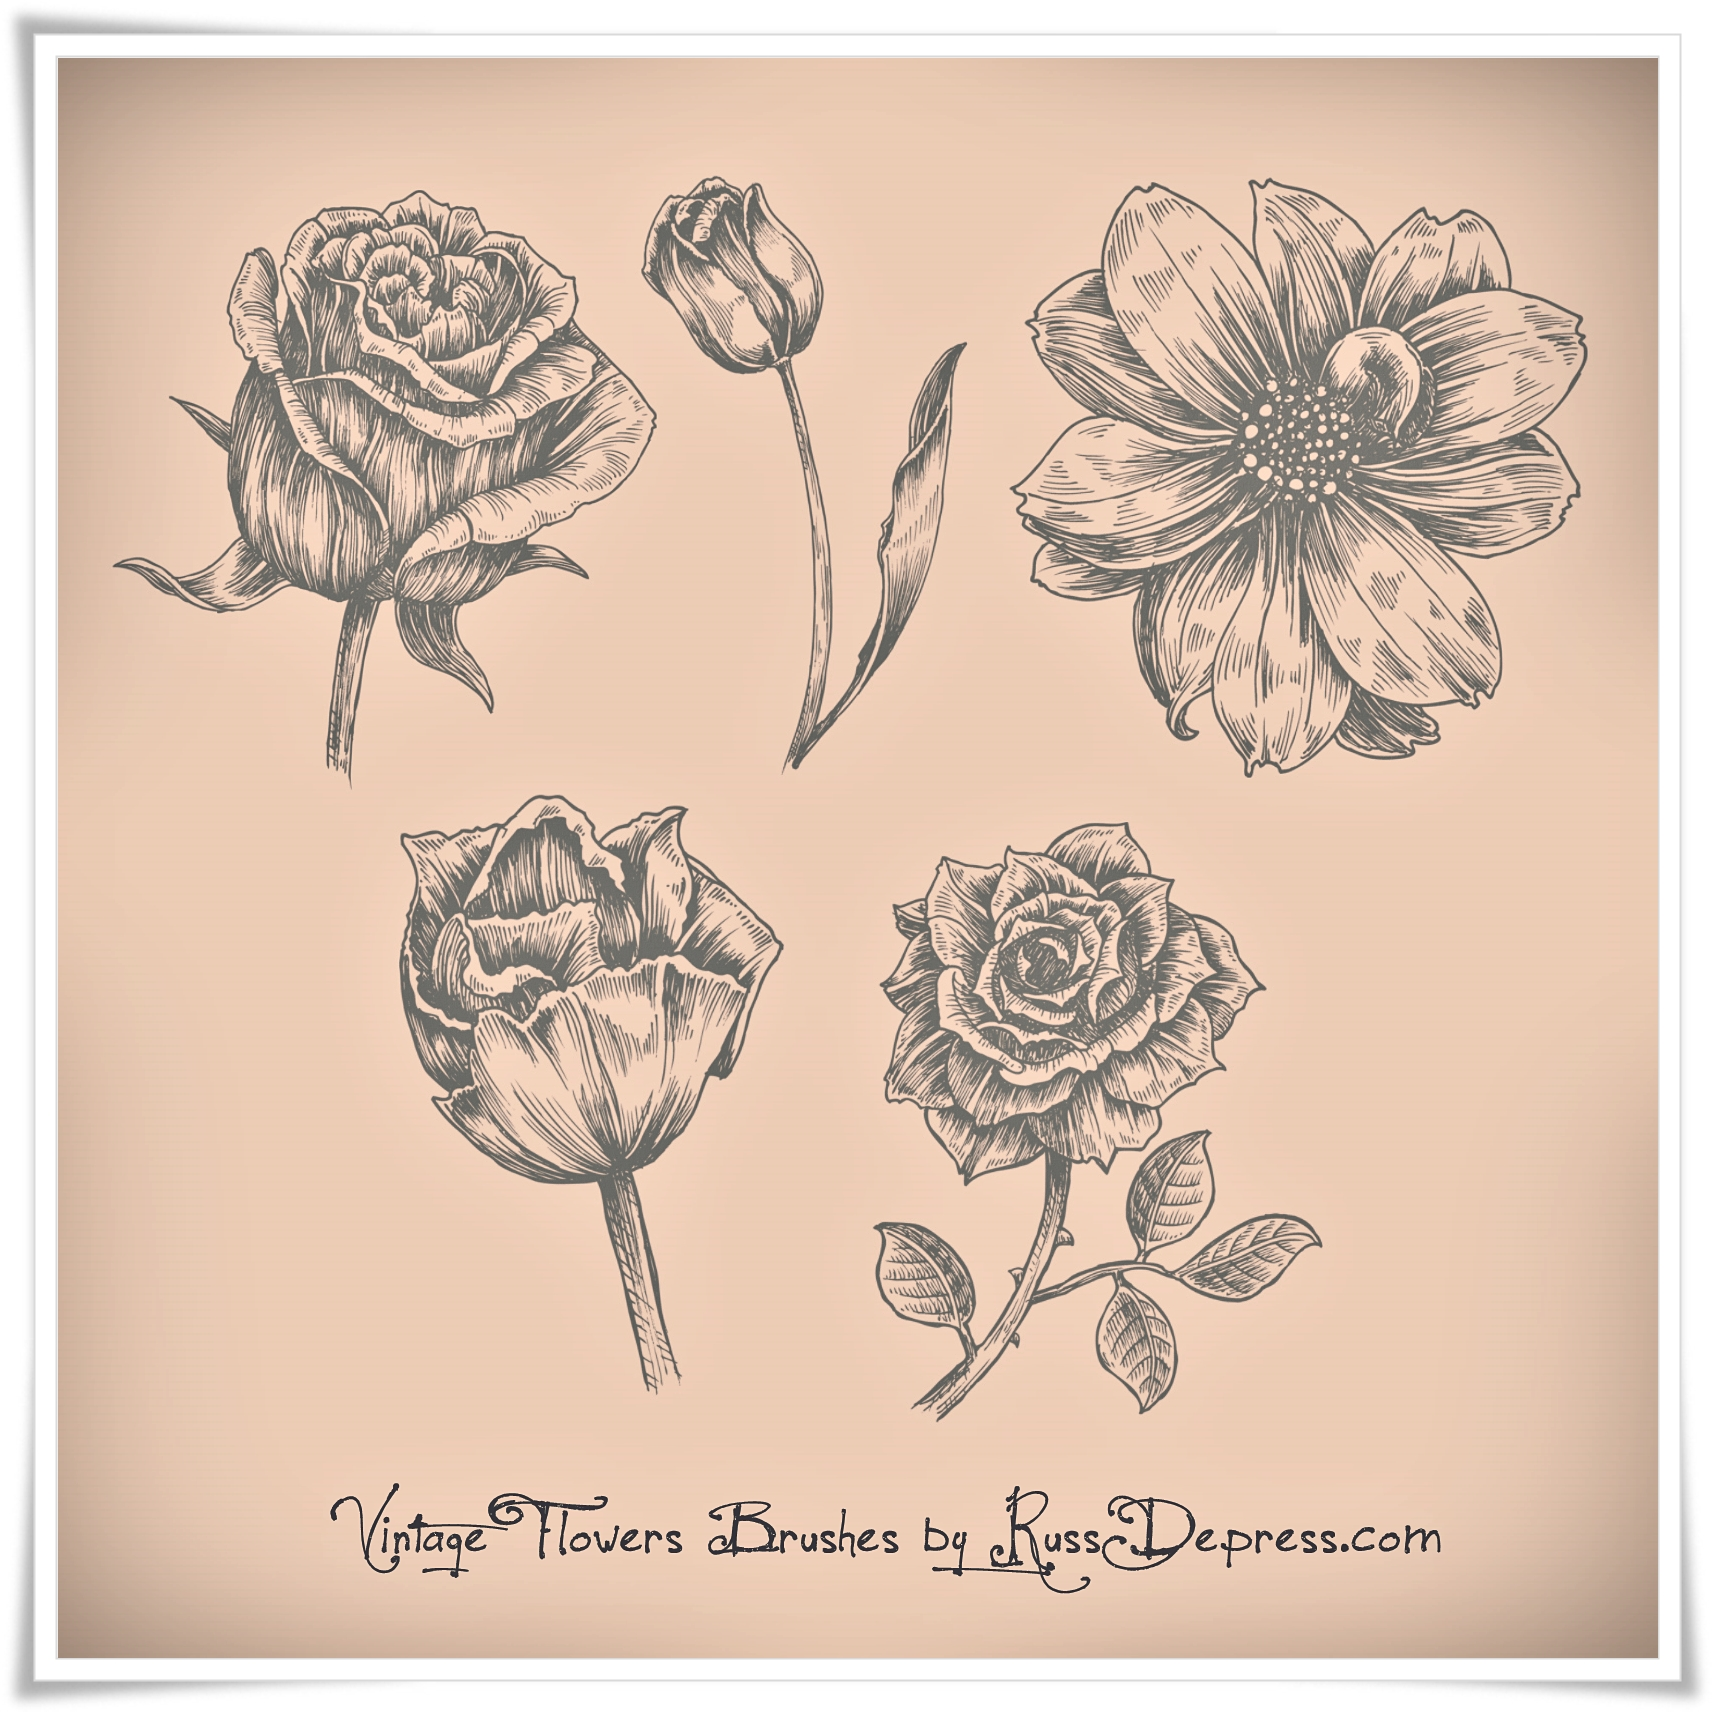 12 Vintage Flower Photoshop Brushes Images